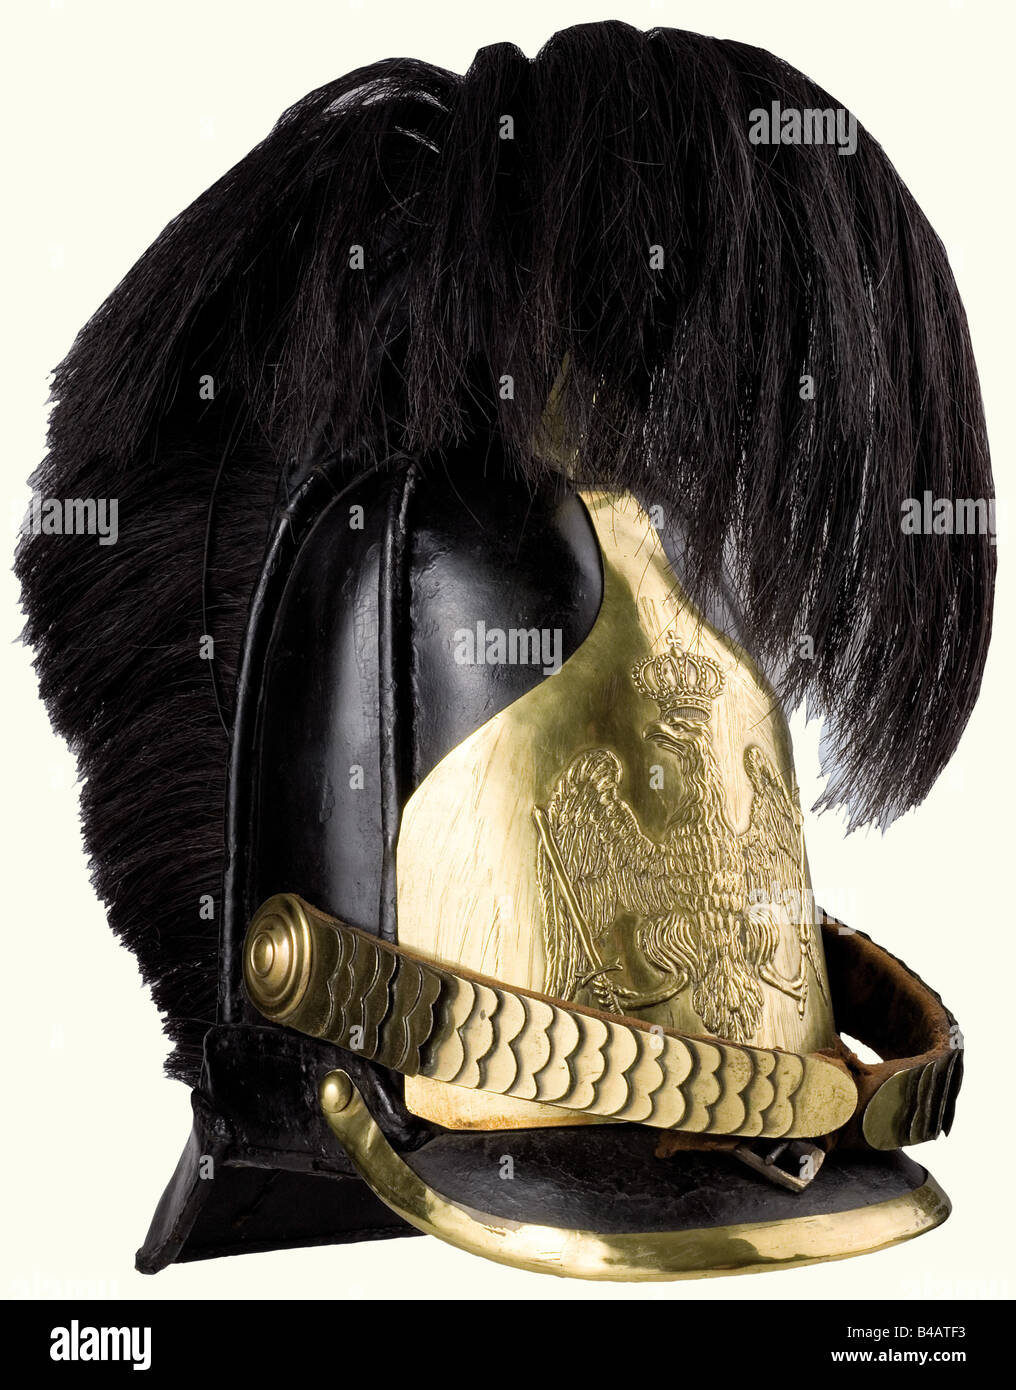 A model 1820 helmet for enlisted personnel, of the Line Cuirassiers. Leather skull with sewn on protective bars - Stock Image